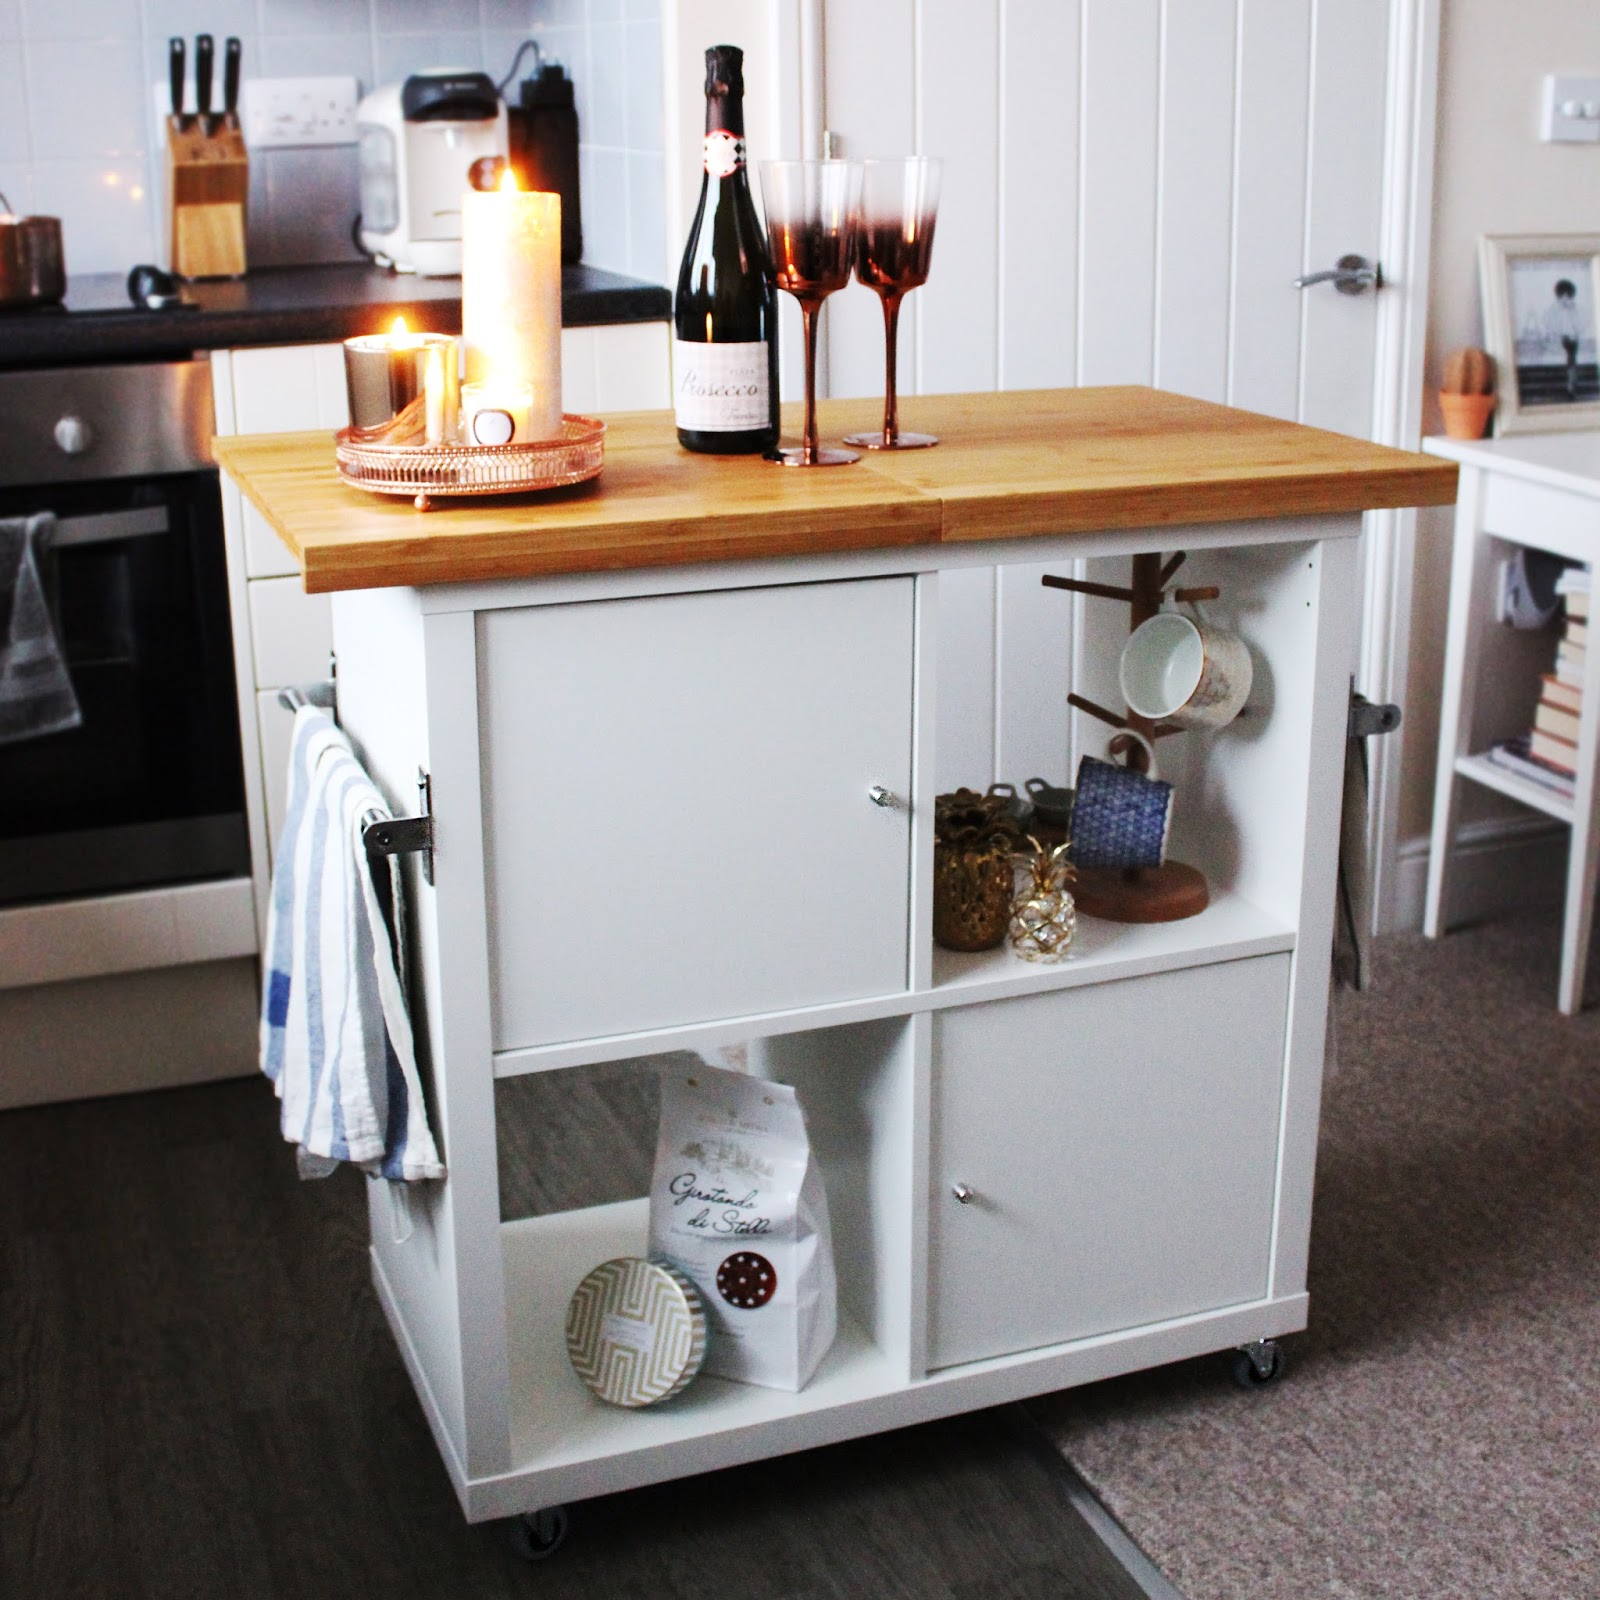 Kitchen Island Stools Ikea: Ikea Kallax Kitchen Island Hack